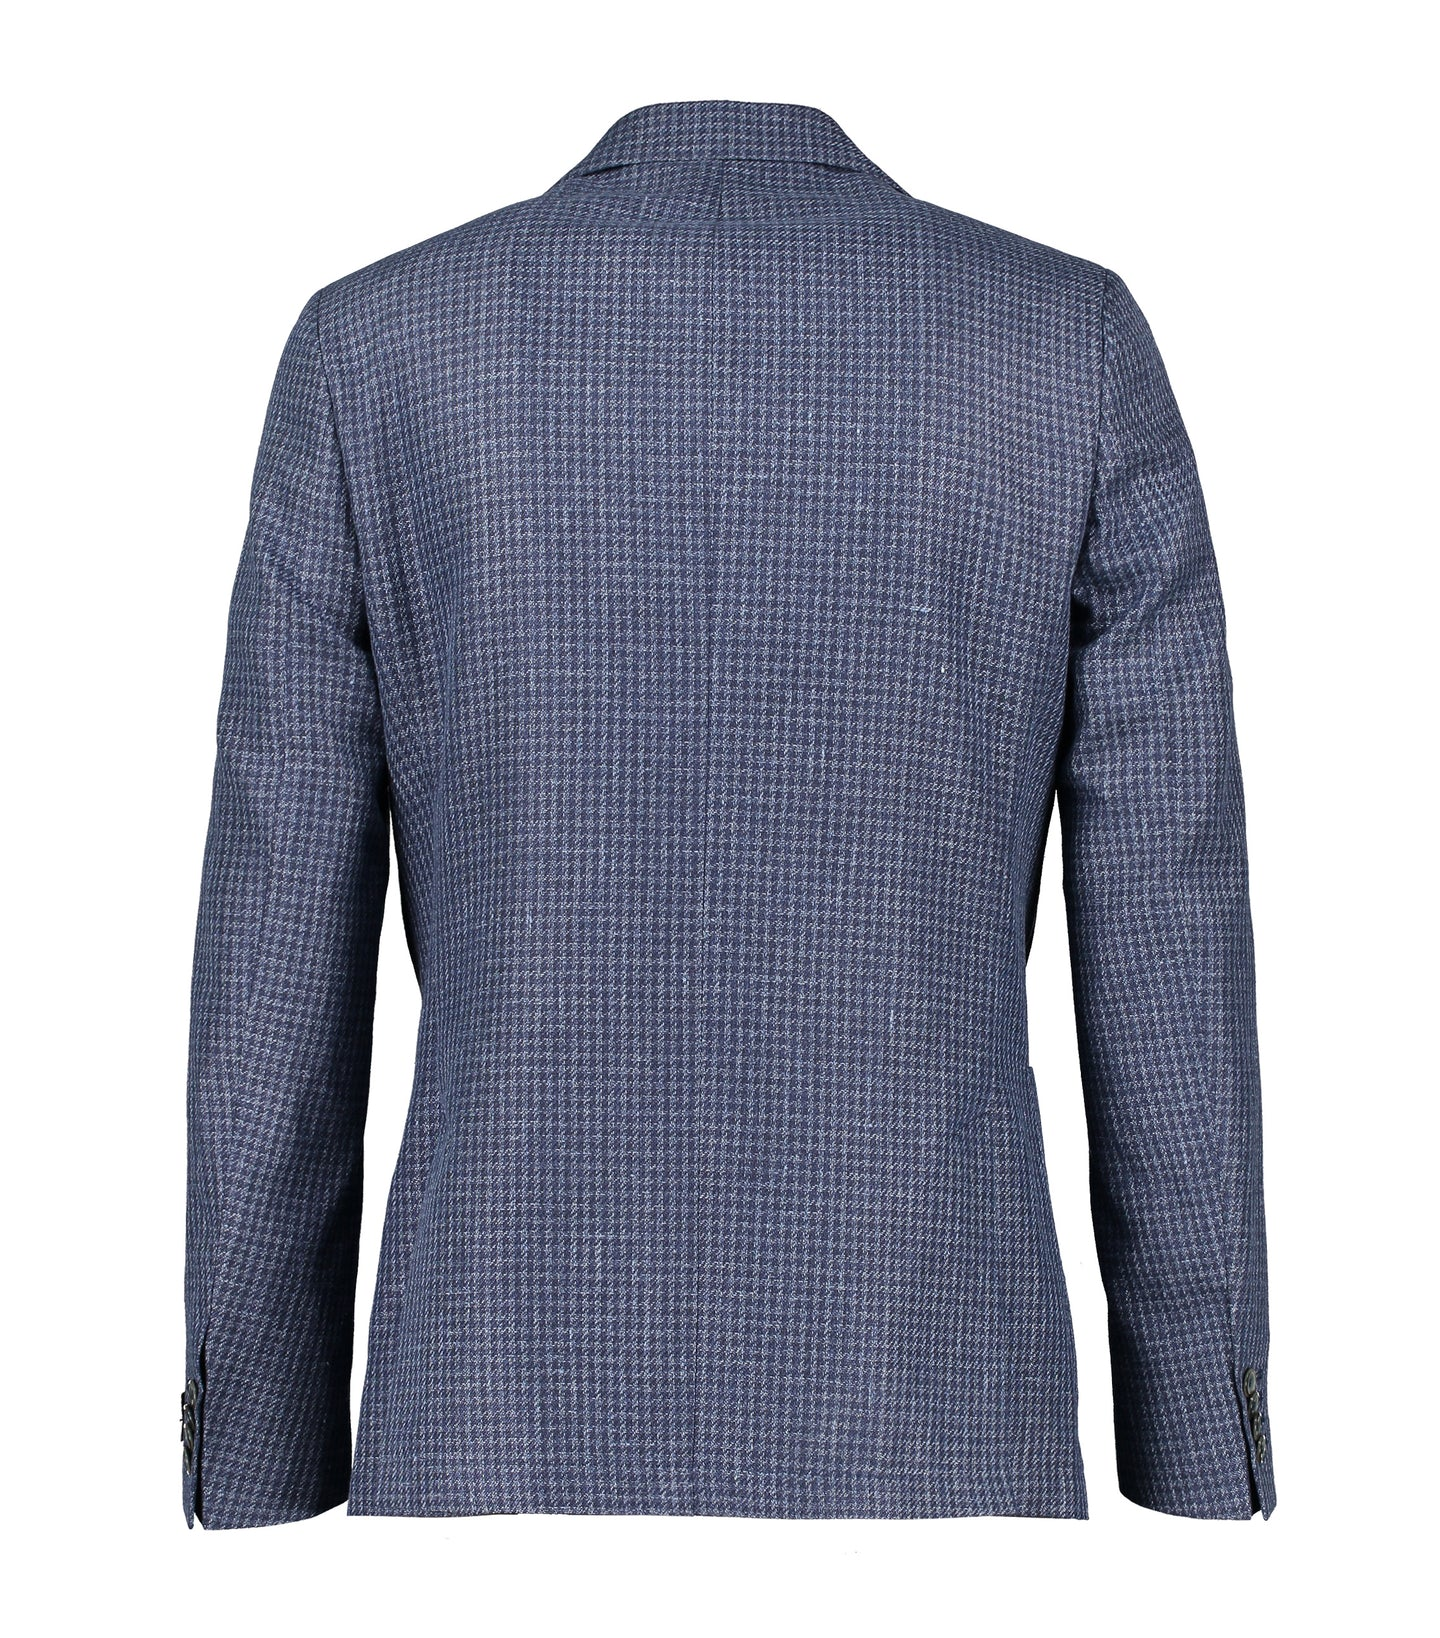 Ness Blue Houndstooth Jacket